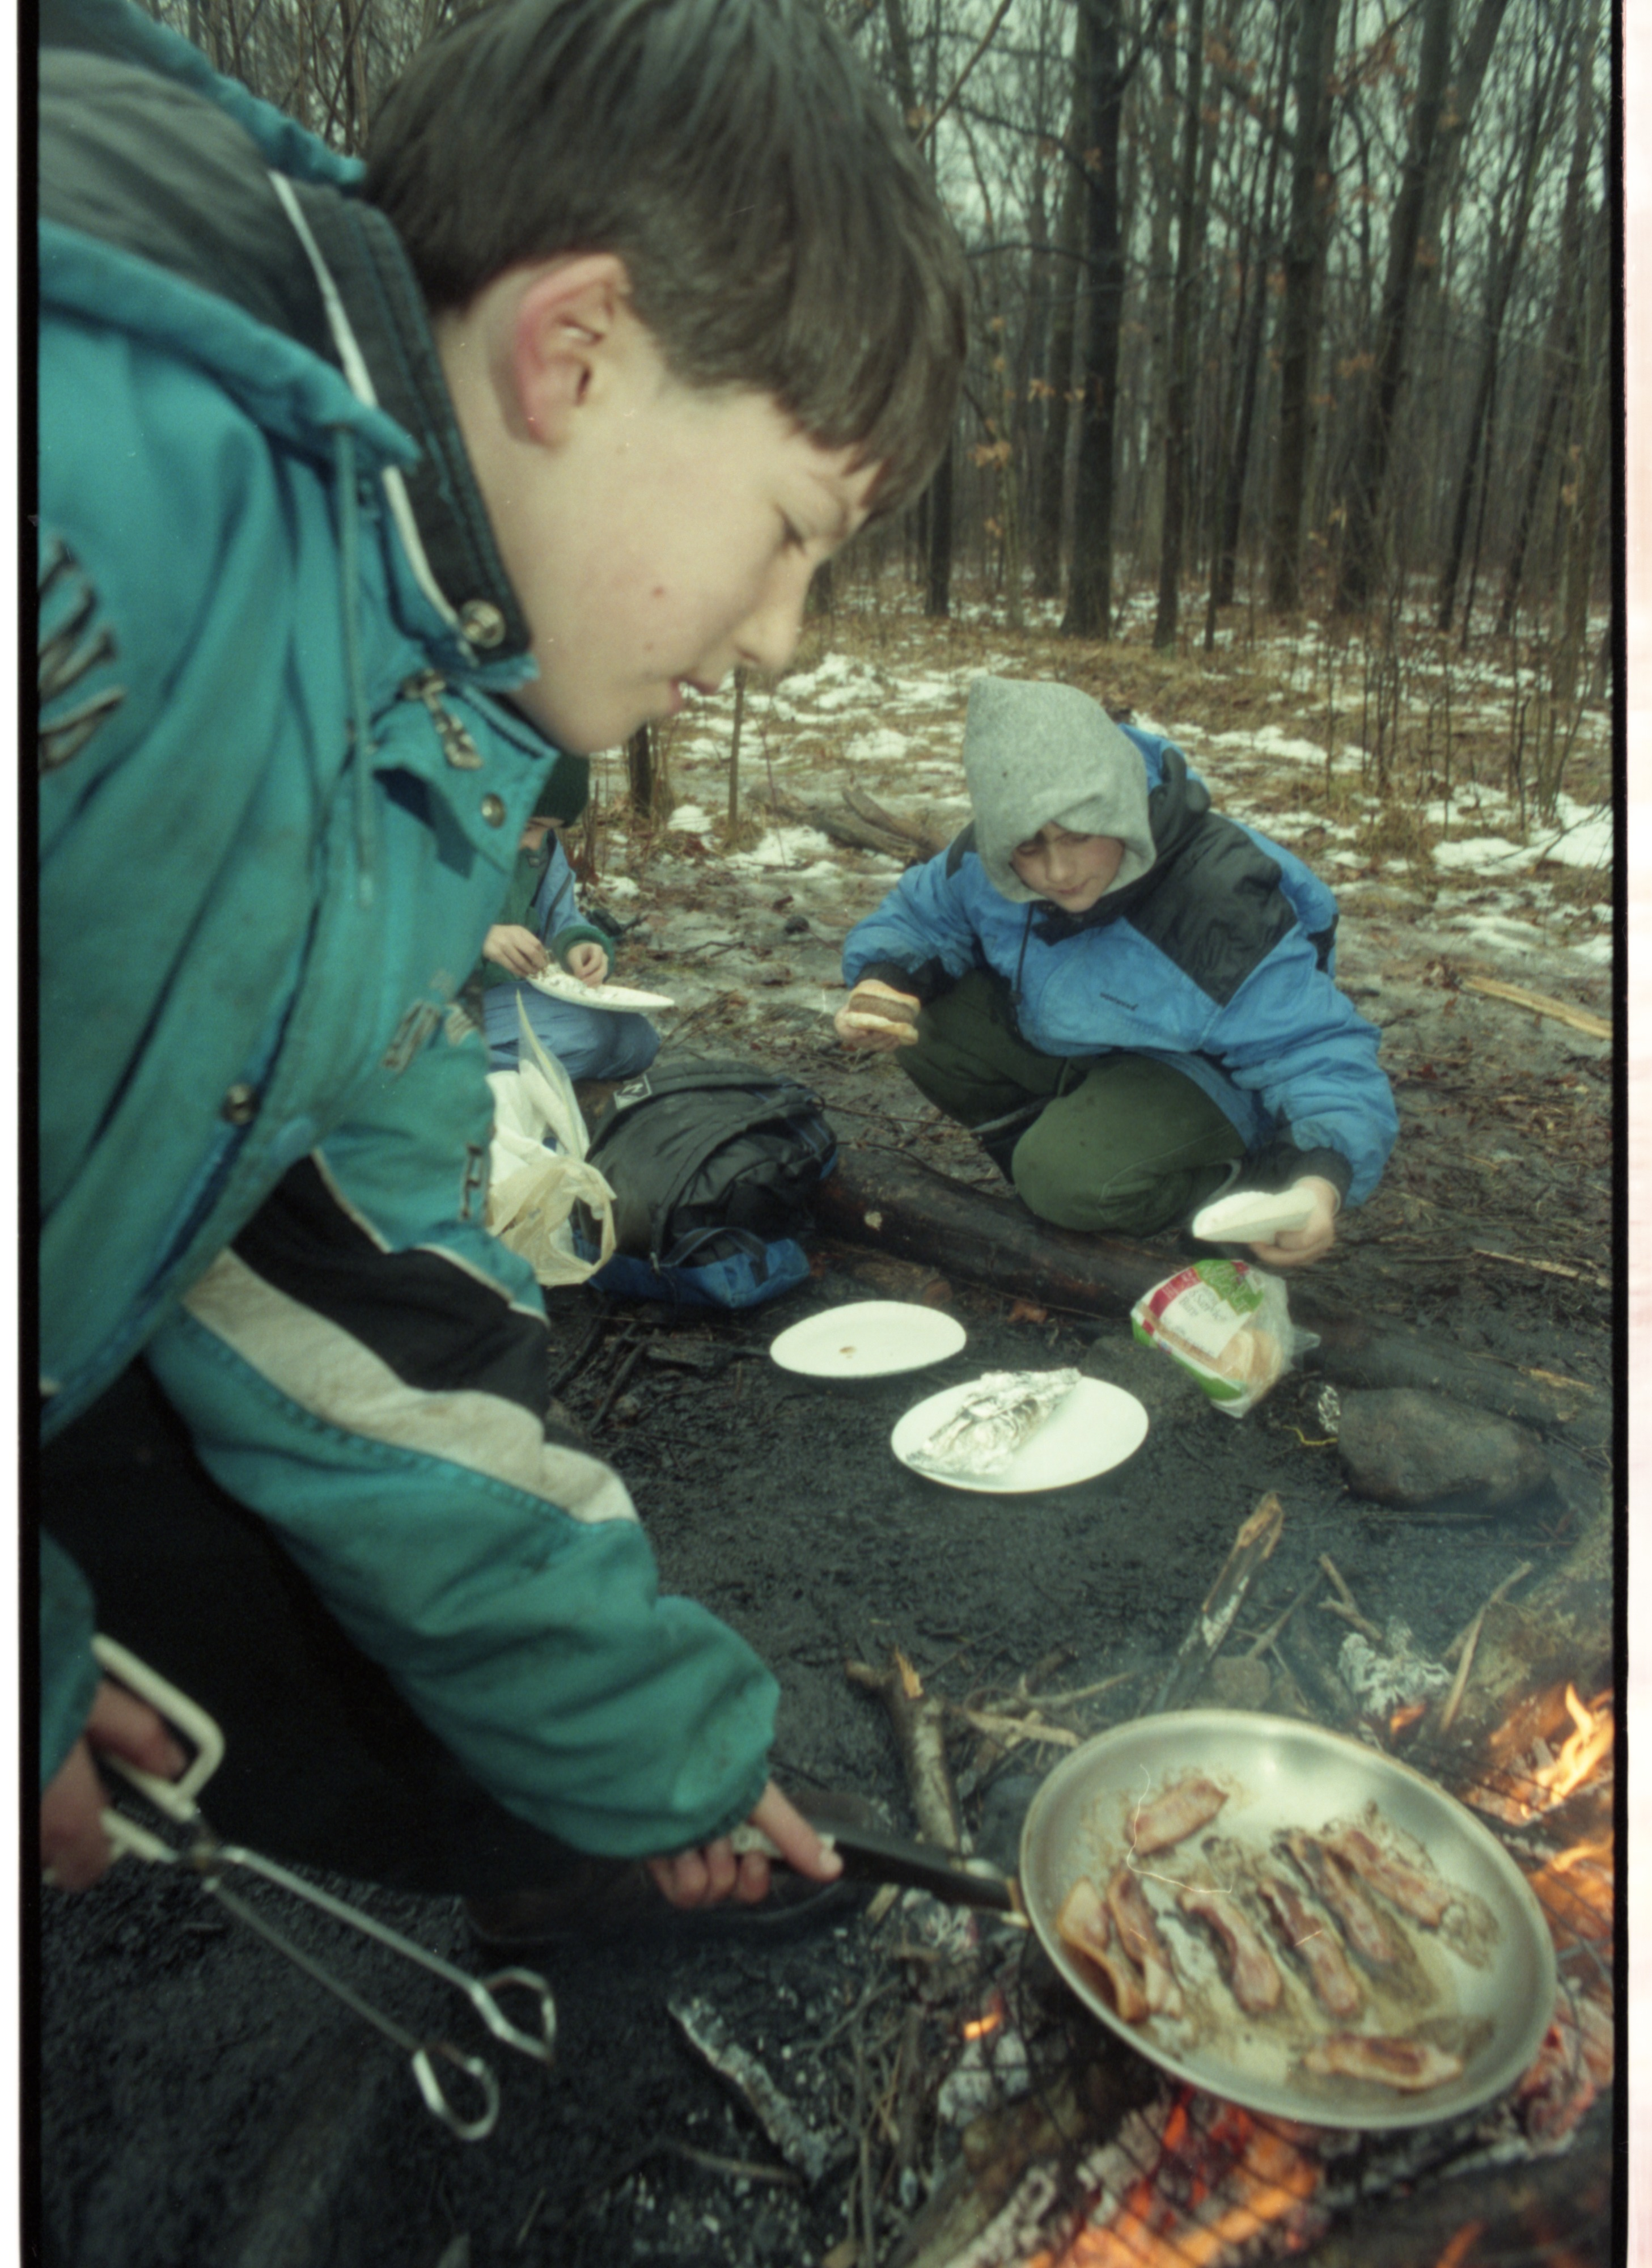 Eberwhite School Students Cook A Meal In Winter Survival Skills Outing, January 1997 image